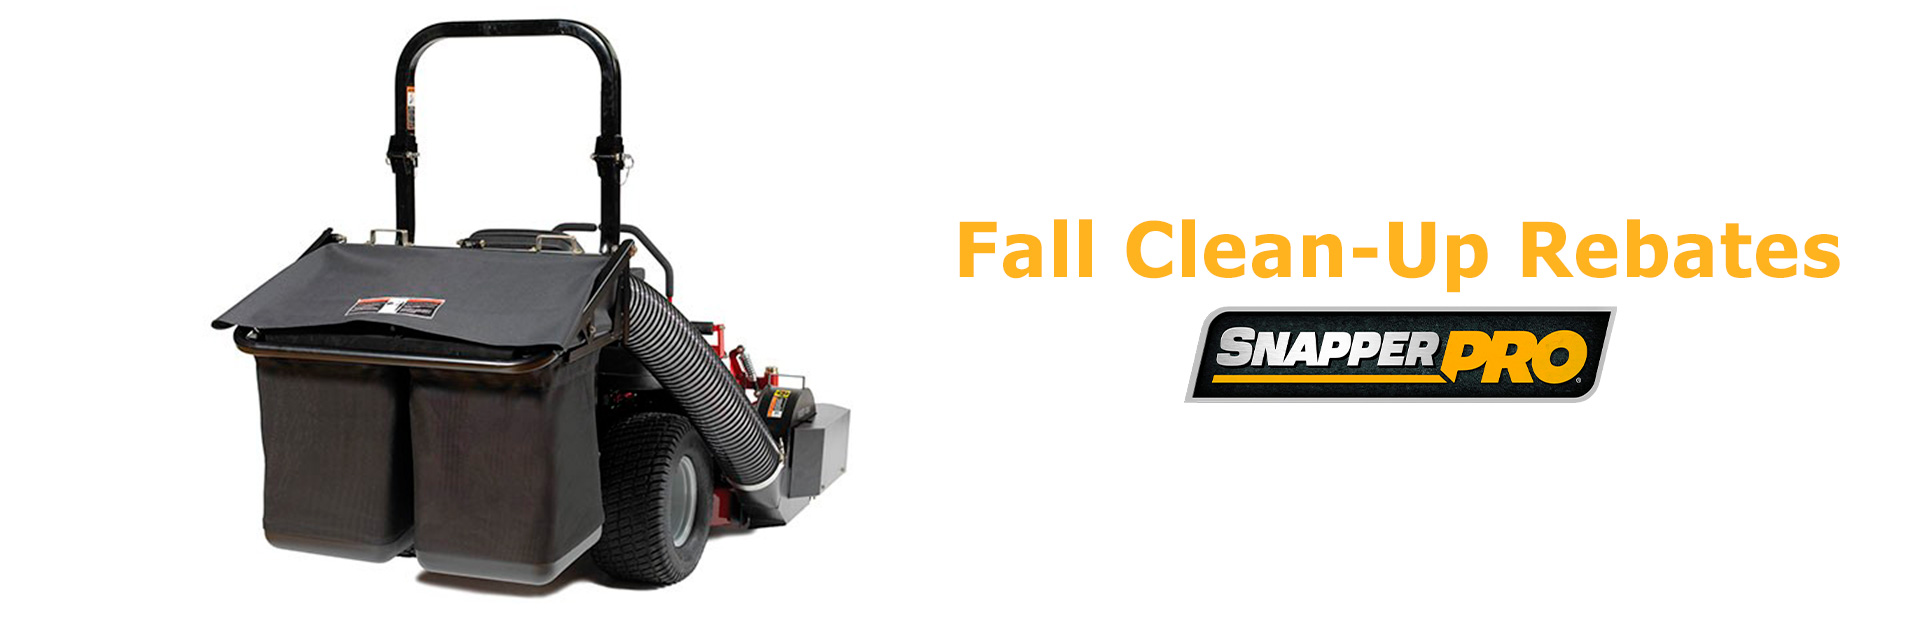 Snapper Pro: Fall Clean-Up Rebates